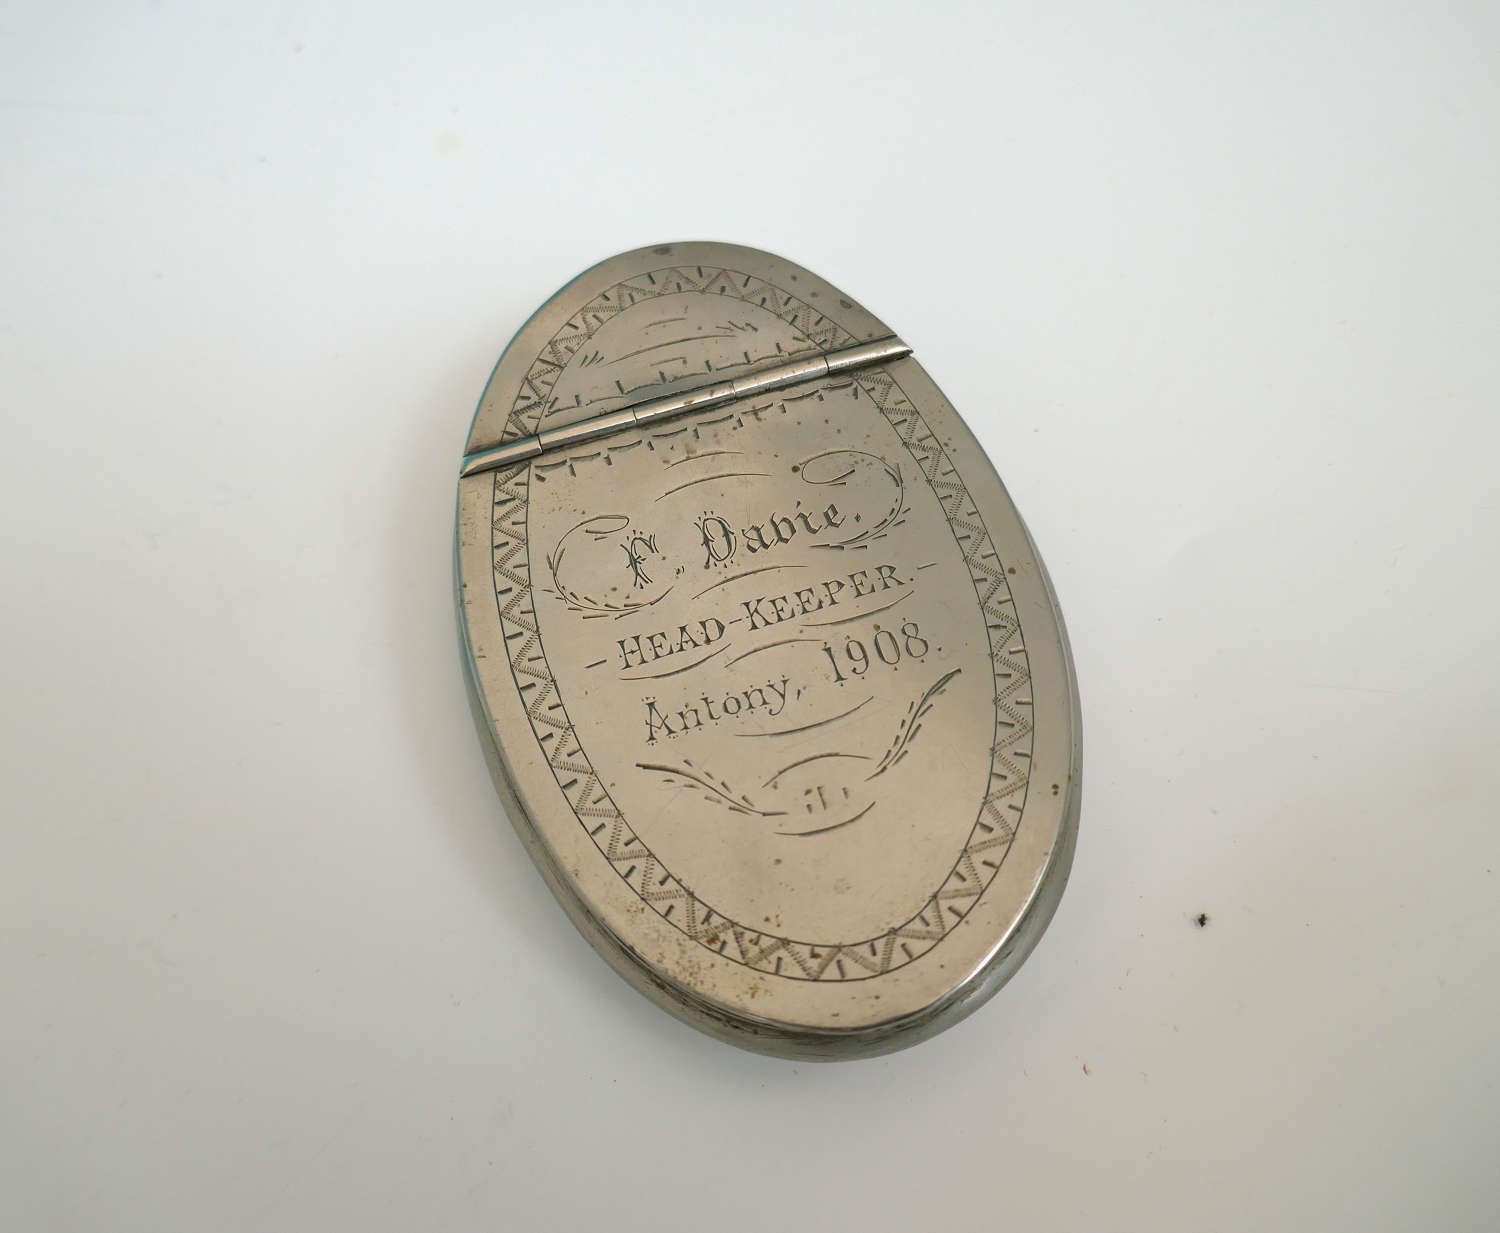 Antique Early 20th Snuff Box Dated1908 & Engraved Head Keeper F Davie